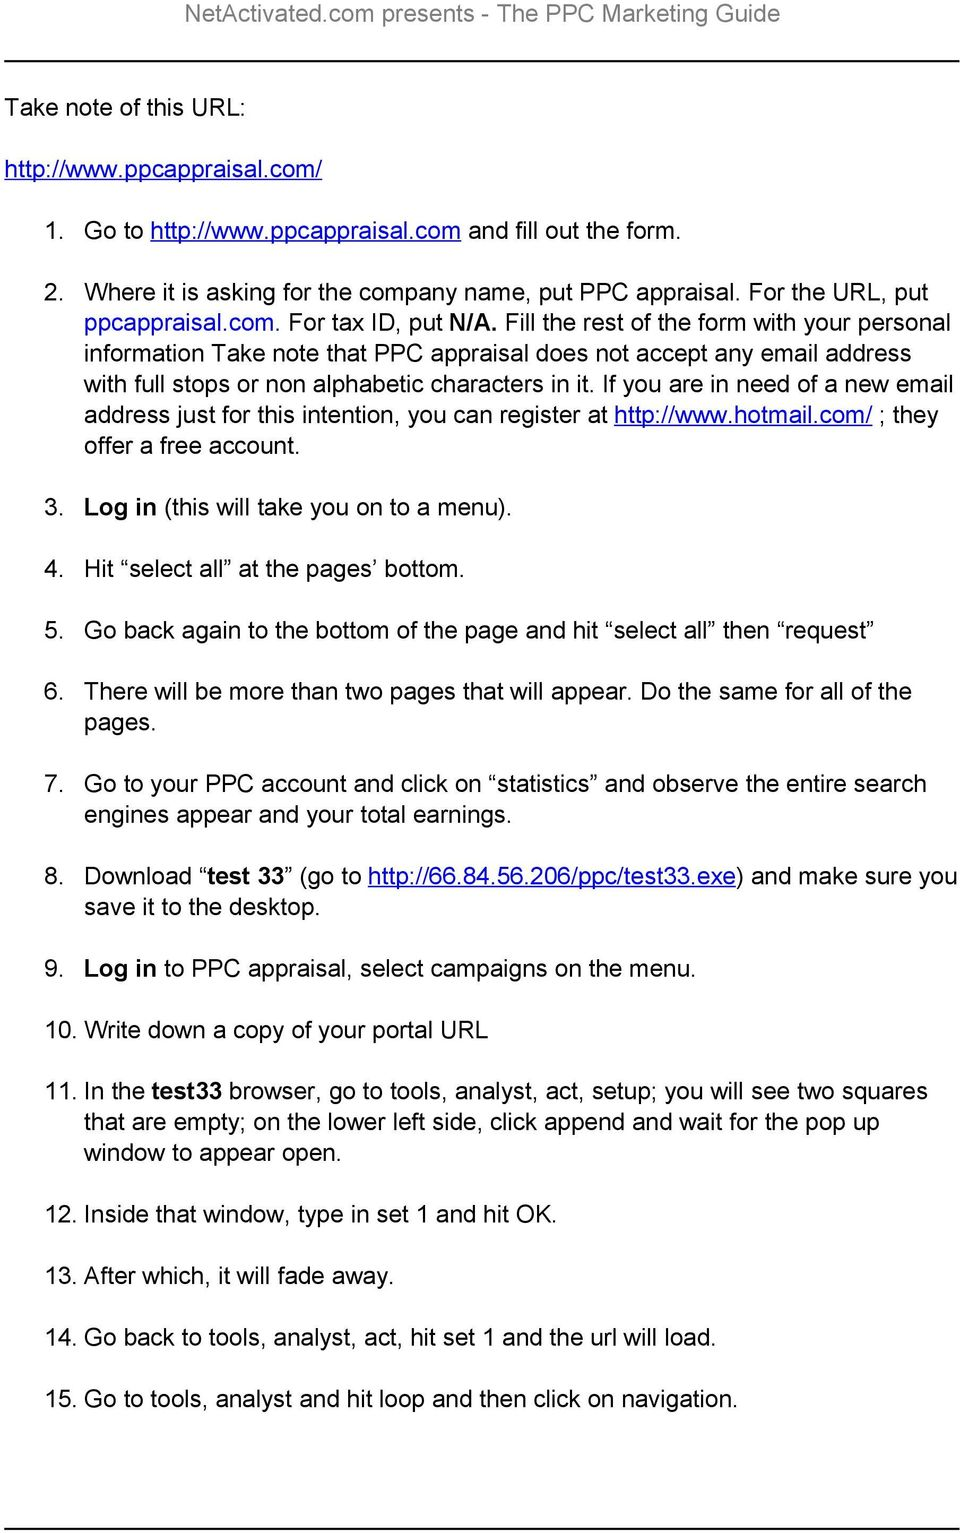 Fill the rest of the form with your personal information Take note that PPC appraisal does not accept any email address with full stops or non alphabetic characters in it.